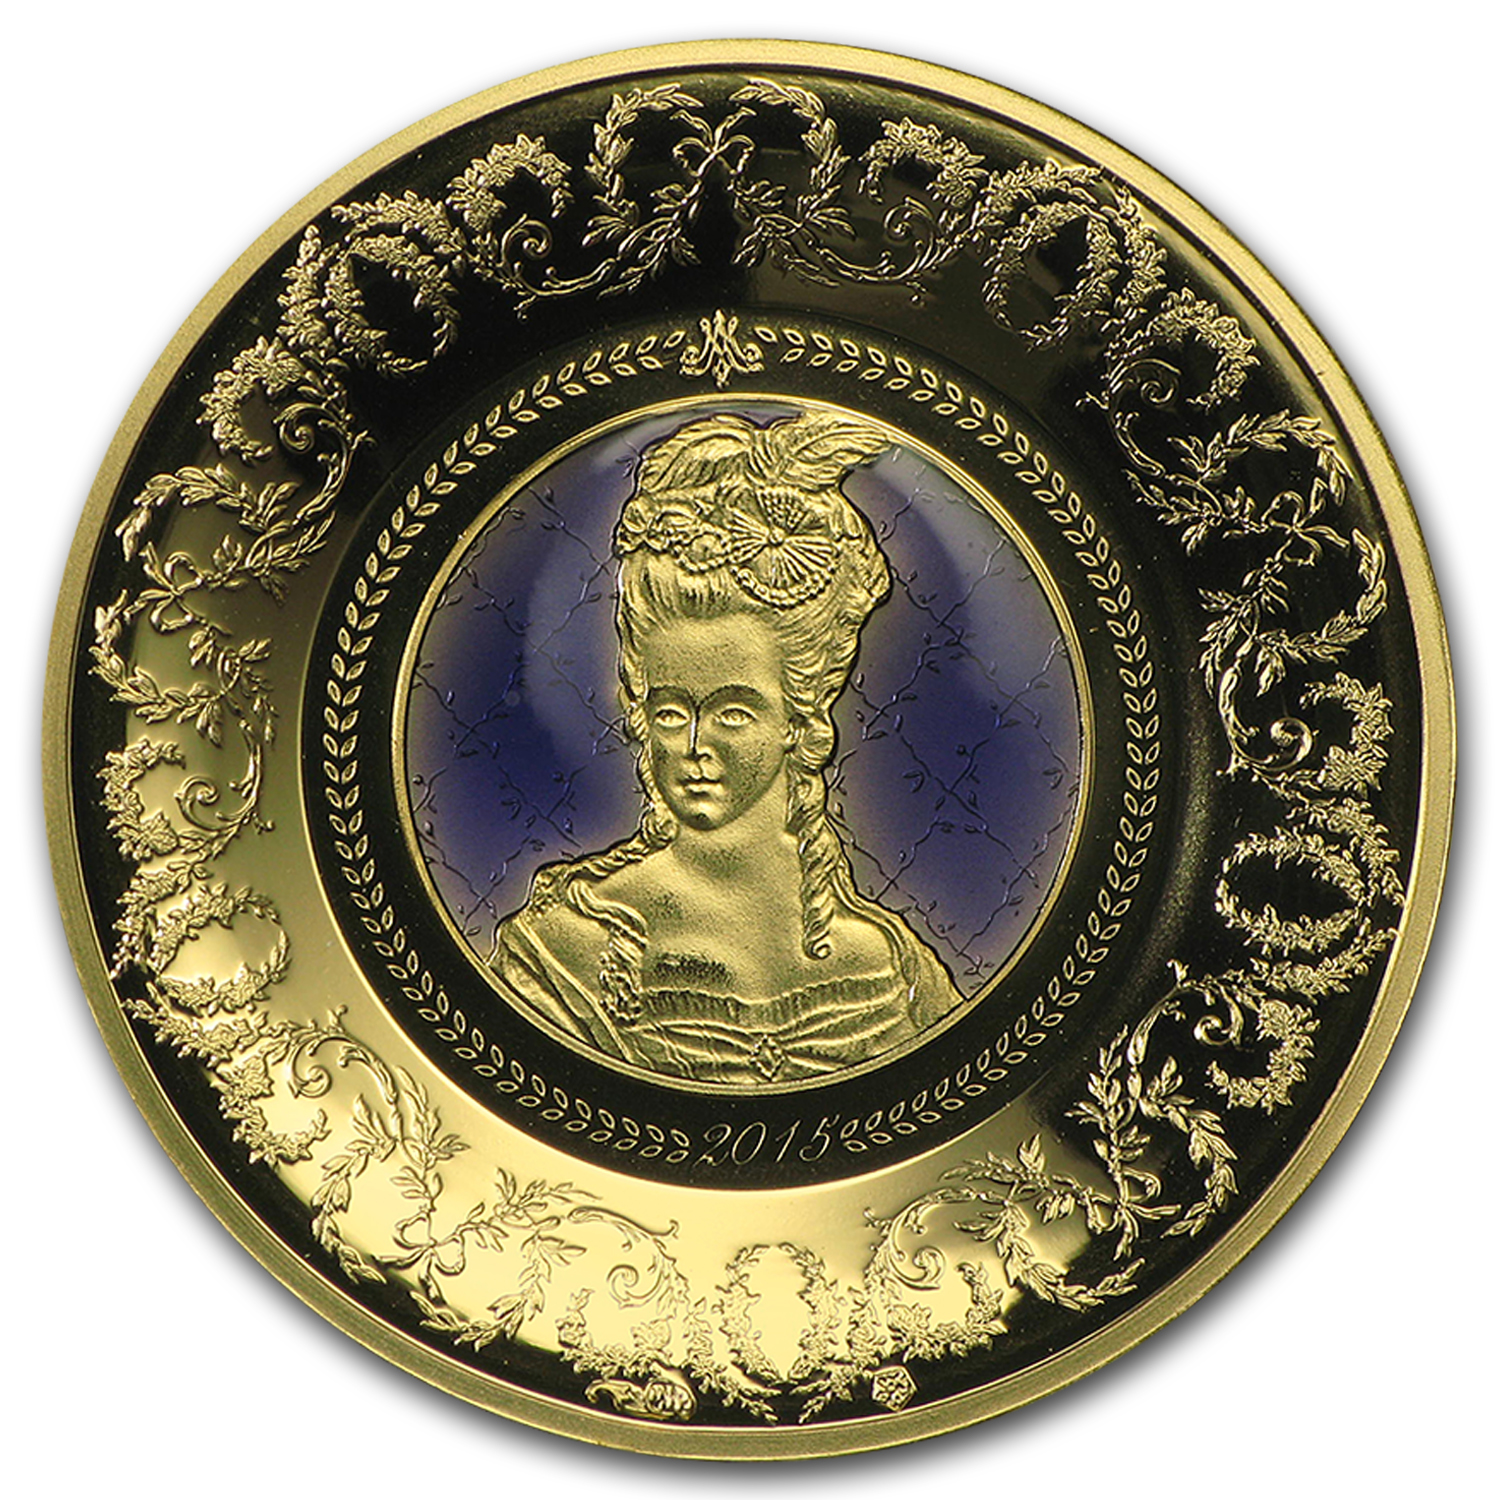 2015 1/4 oz Proof Gold €50 Excellence Series